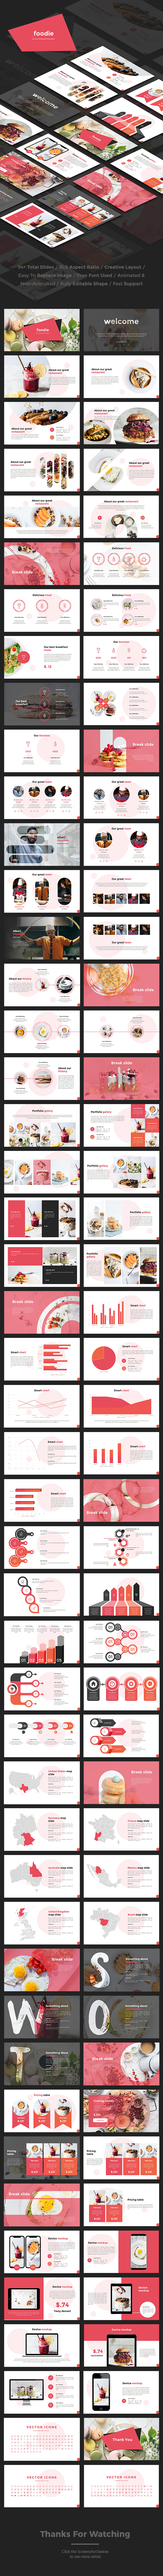 Foodie - Food And Restaurant Keynote Template - Business Keynote Templates